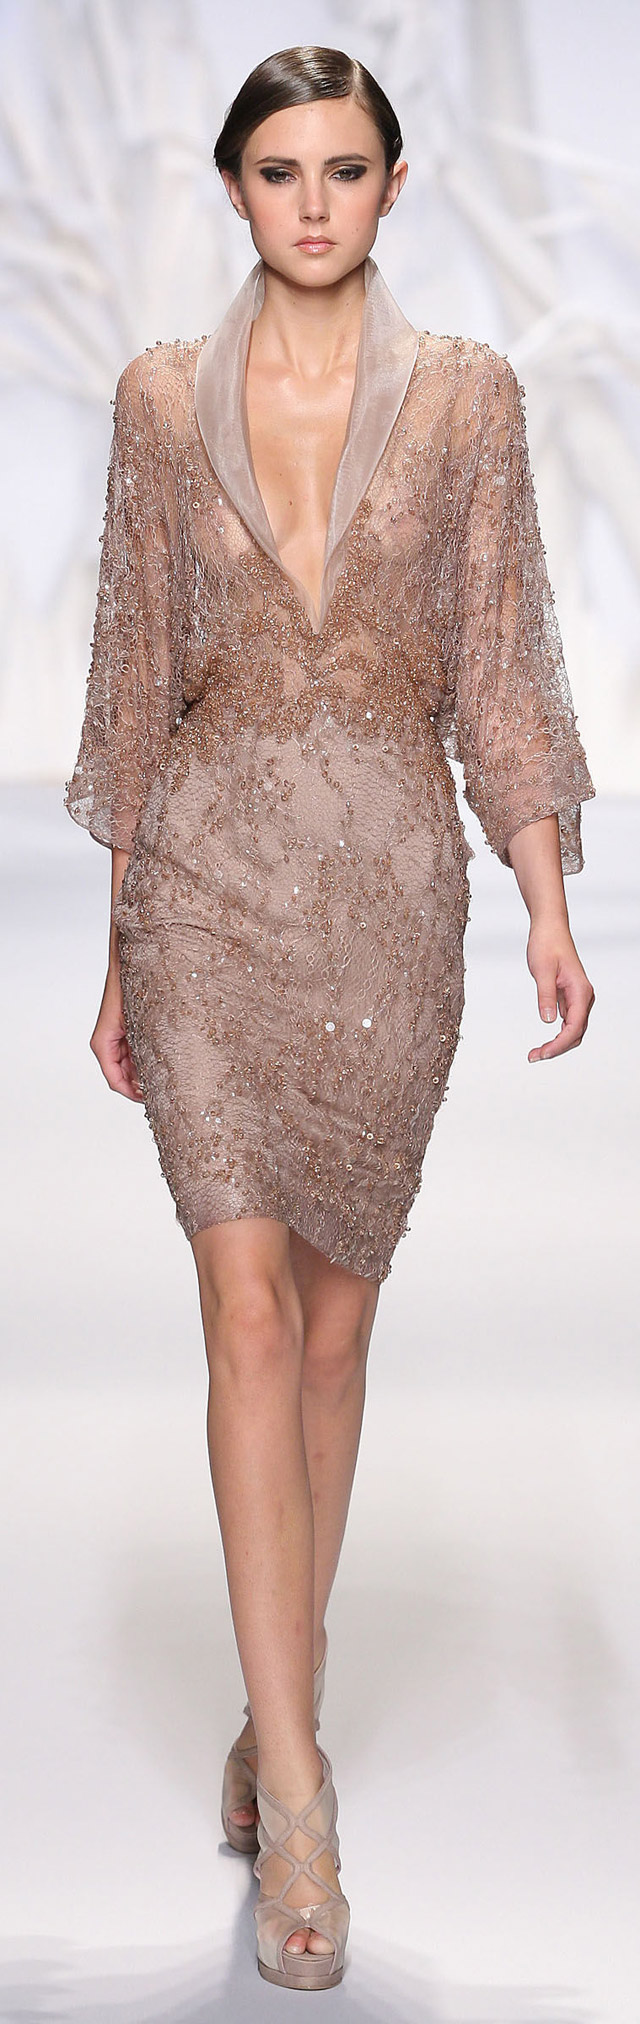 Abed mahfouz haute couture fall winter 2013 2014 for Haute couture designers